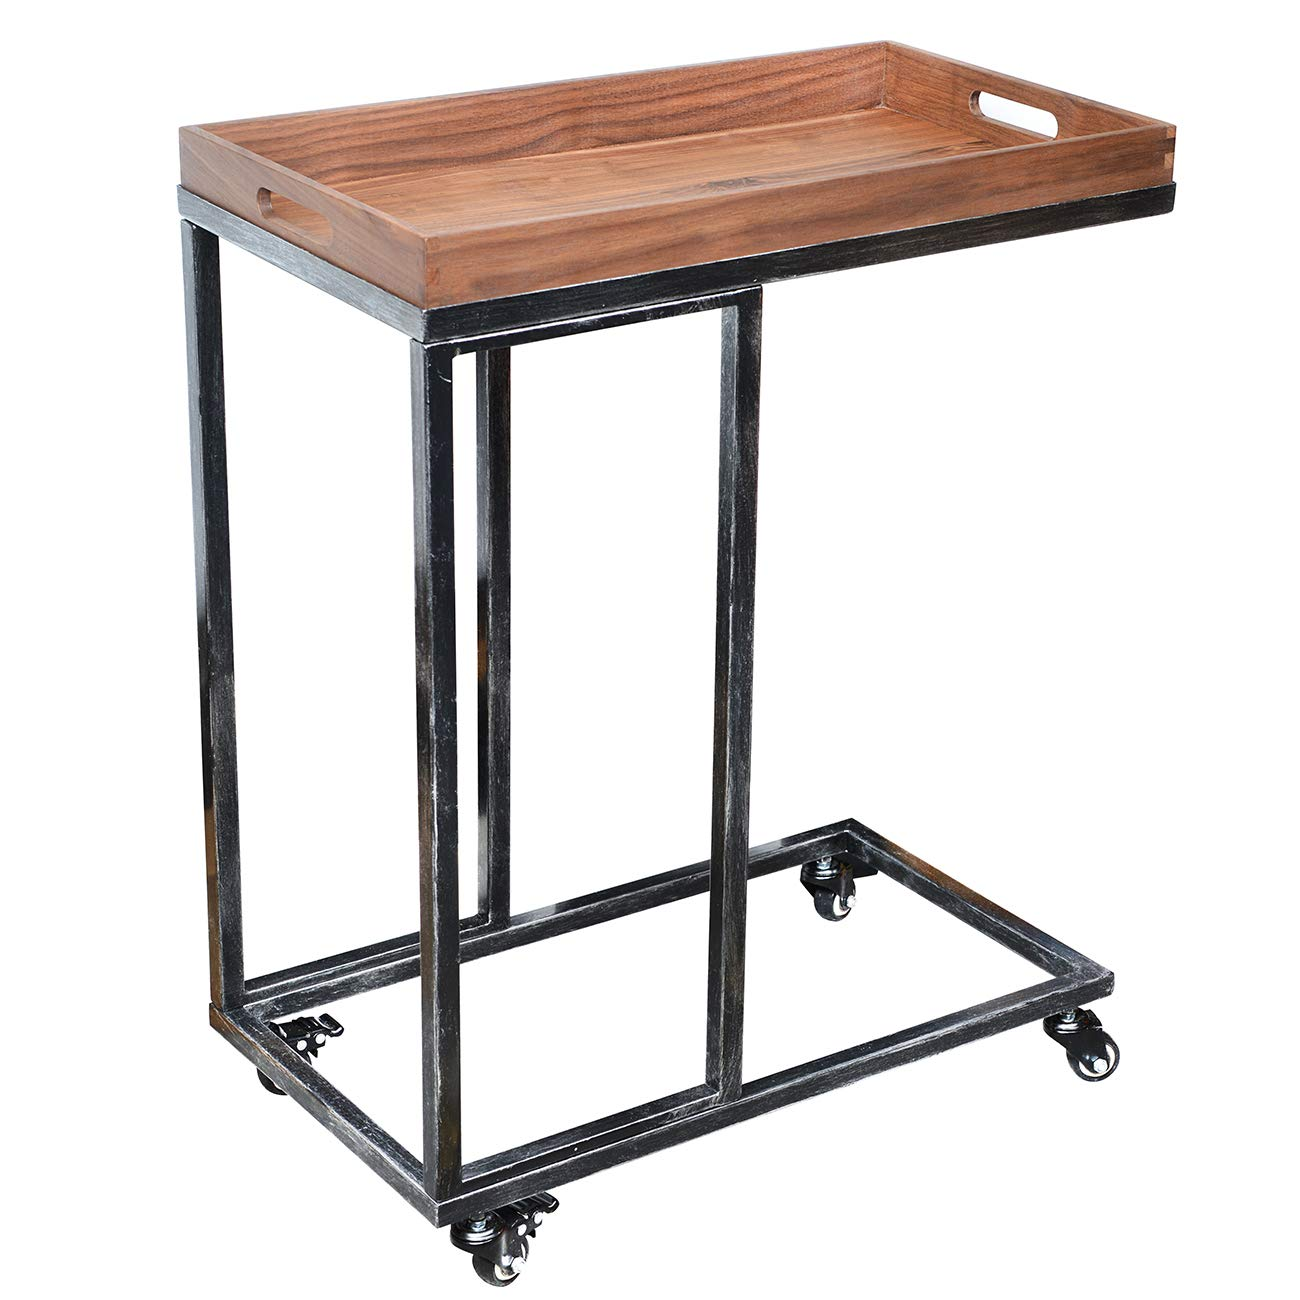 24''x13'' Extra Large Wooden Tray Ottoman Tray With Metal Support Frame Serving Cart FSC Natural Handmade Black Walnut Serving Tray Vintage Decorative Platters End Table Side Accent Table